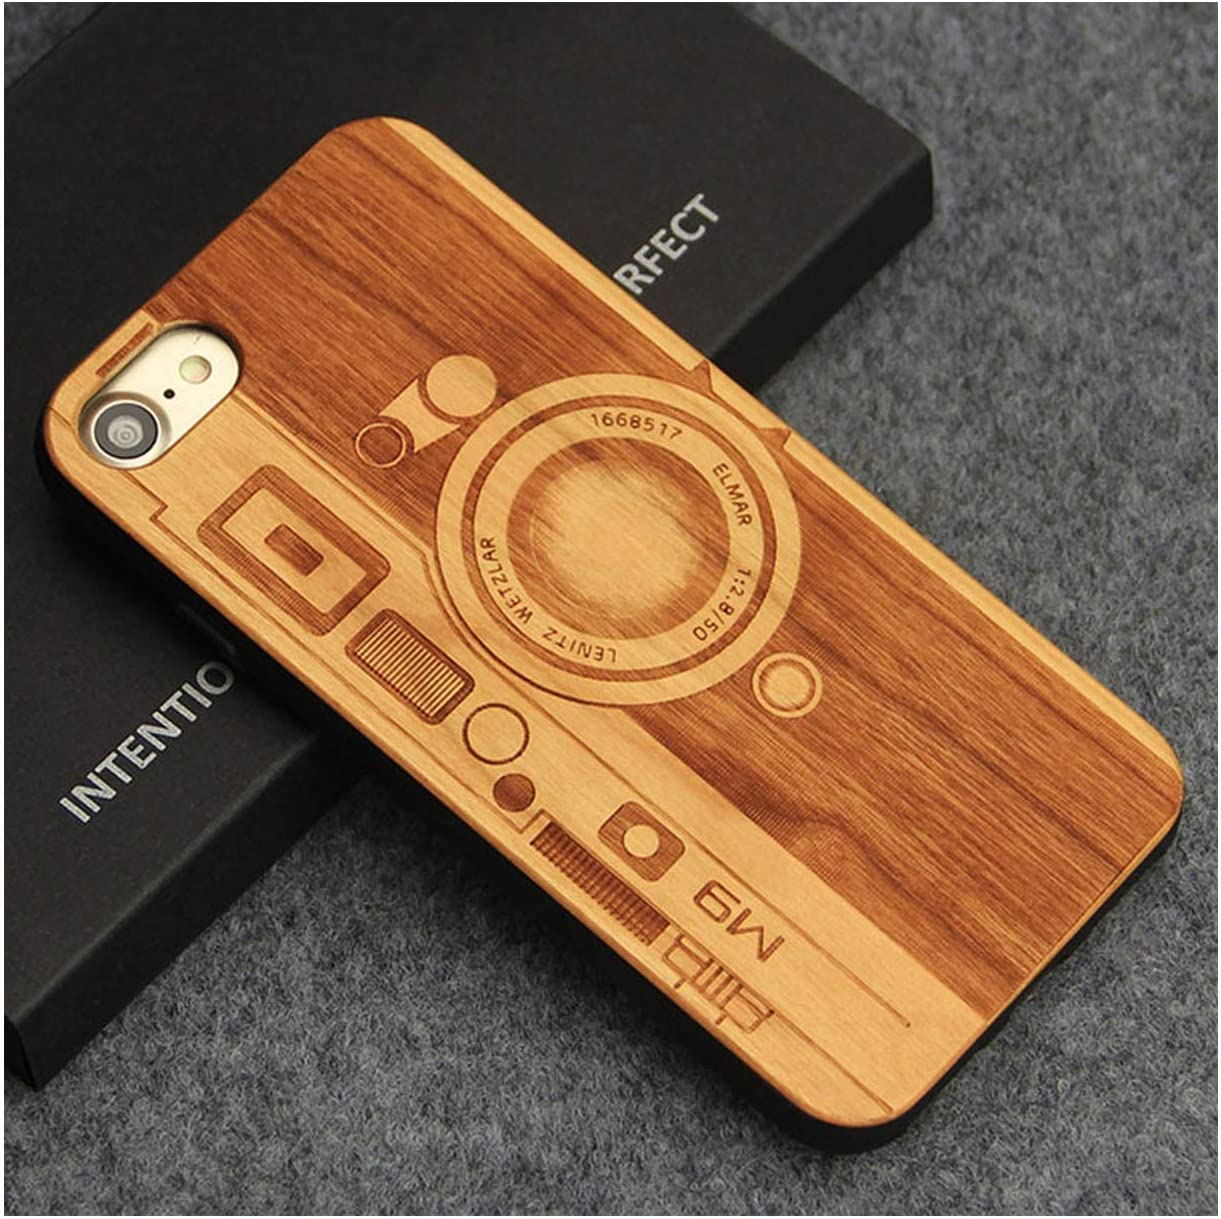 I8 TPU Cherry Wood Case For iPhone 8 Plus Retro Natural Wood Case